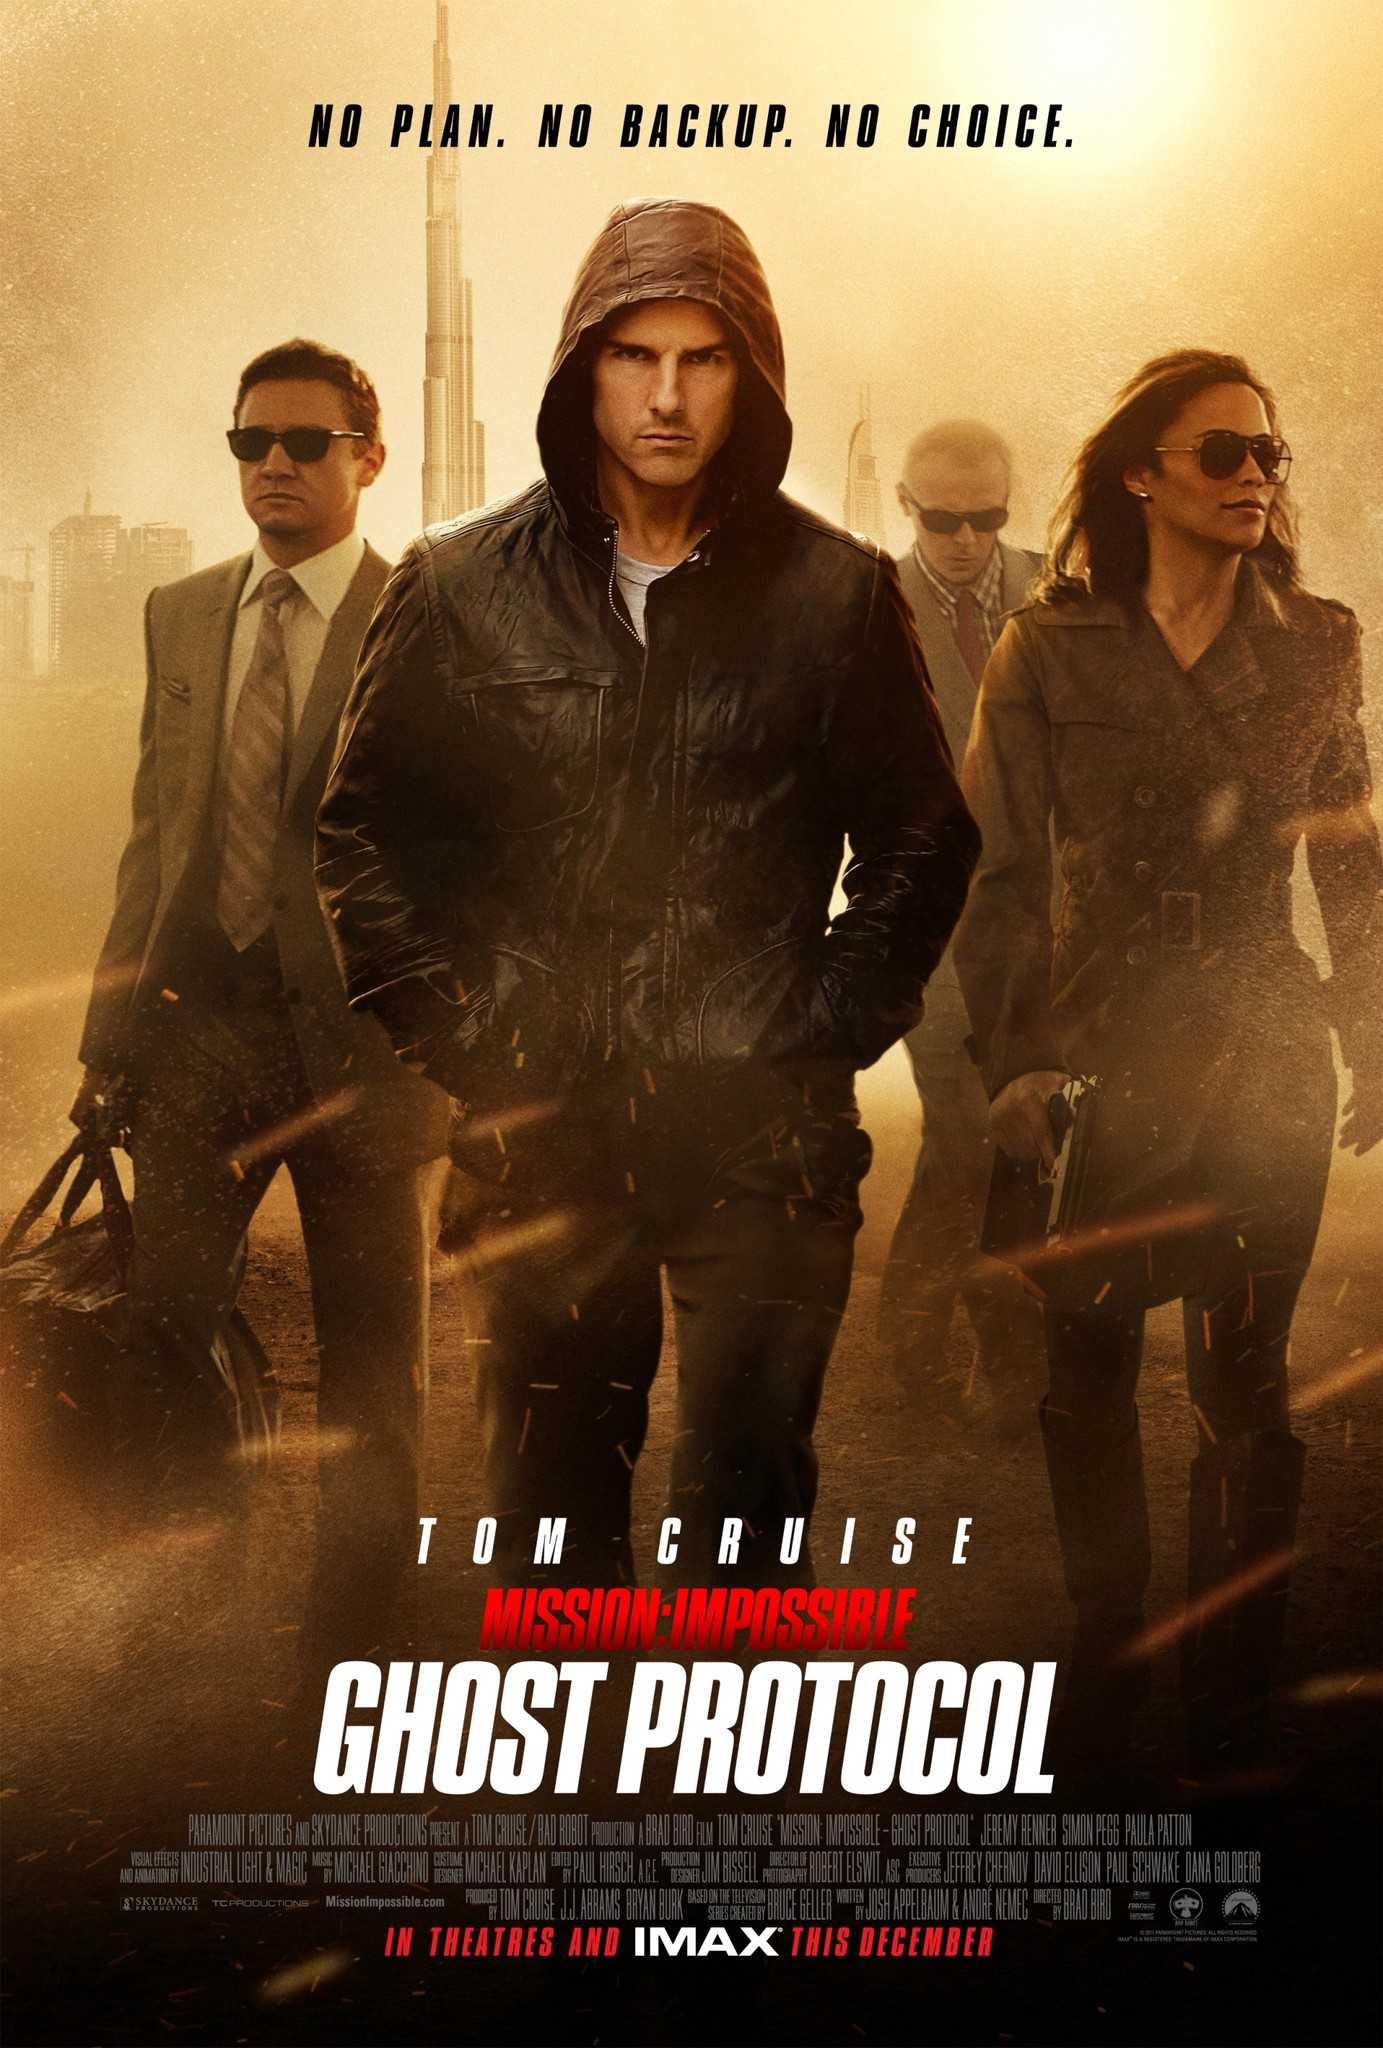 mission impossible ghost protocol free full movie download